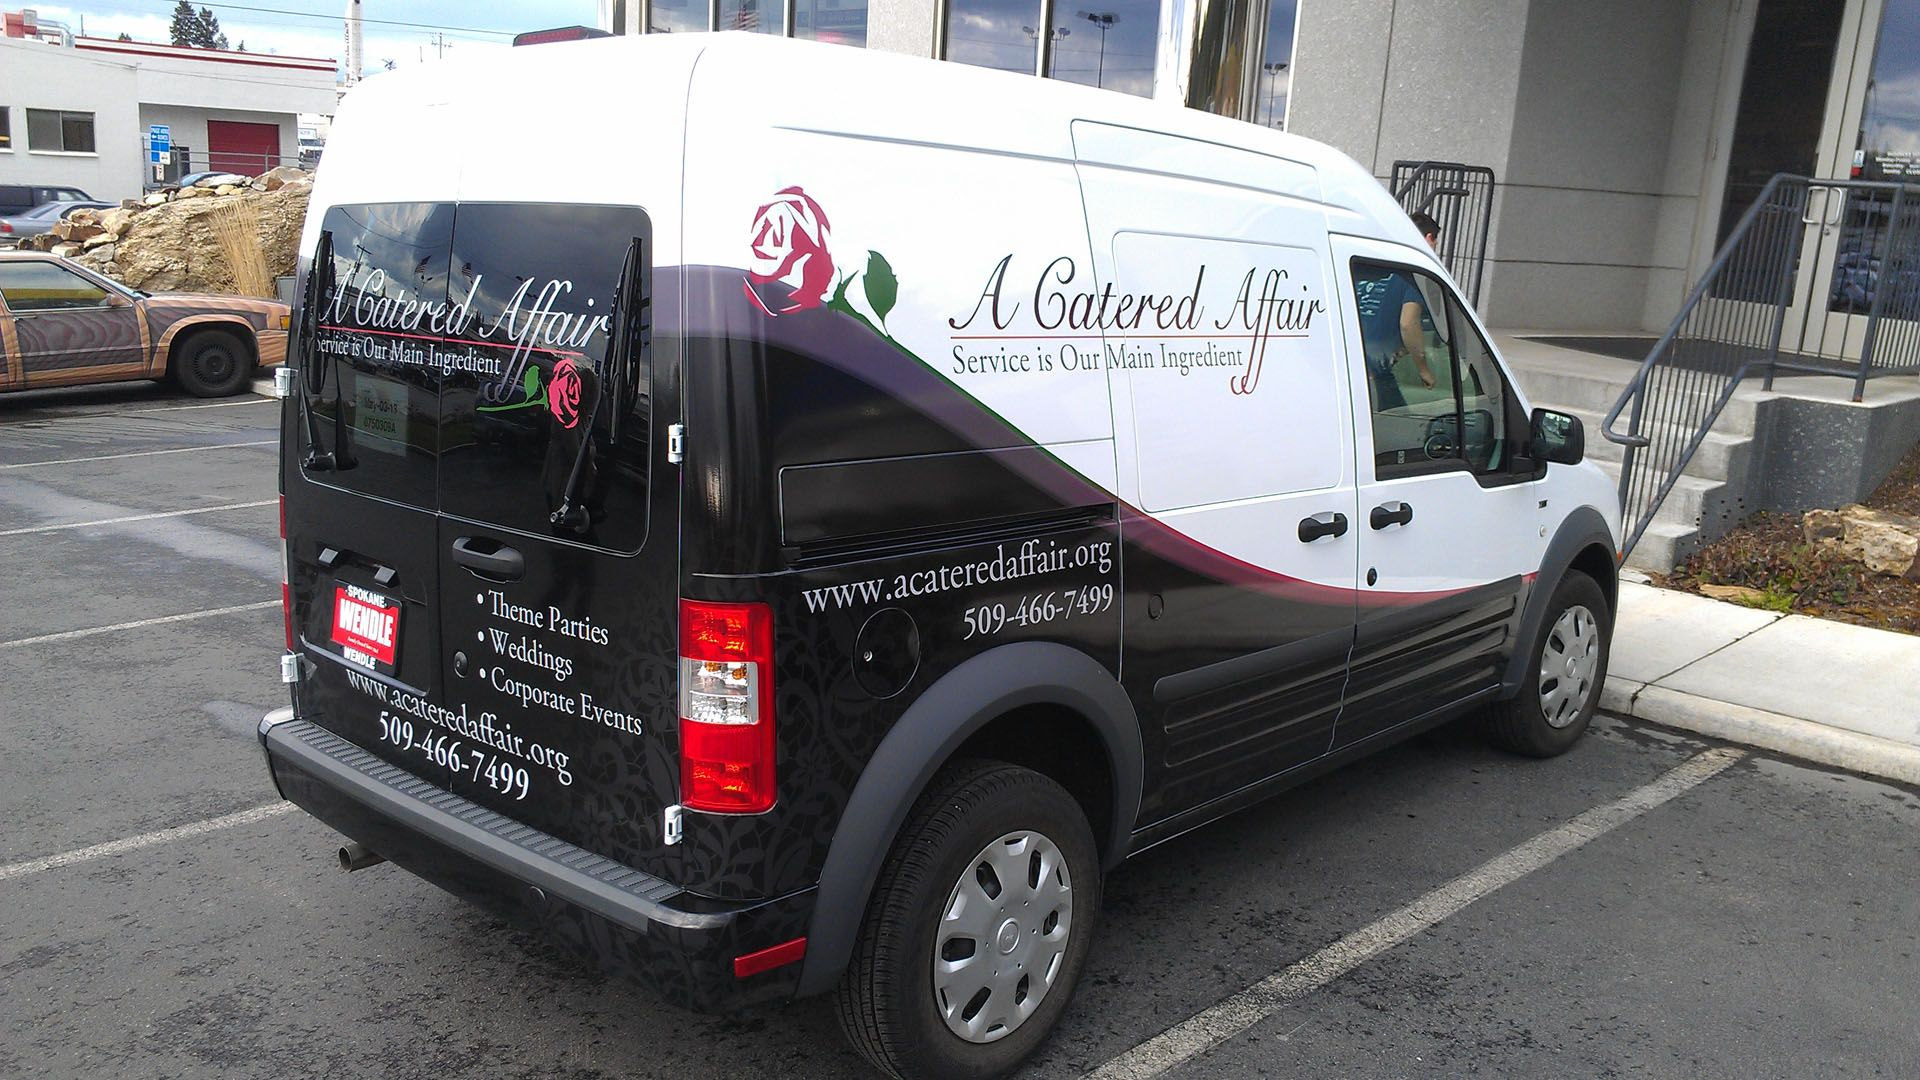 A catered affair ford transit similiar shaped van interting to see how the curves come out